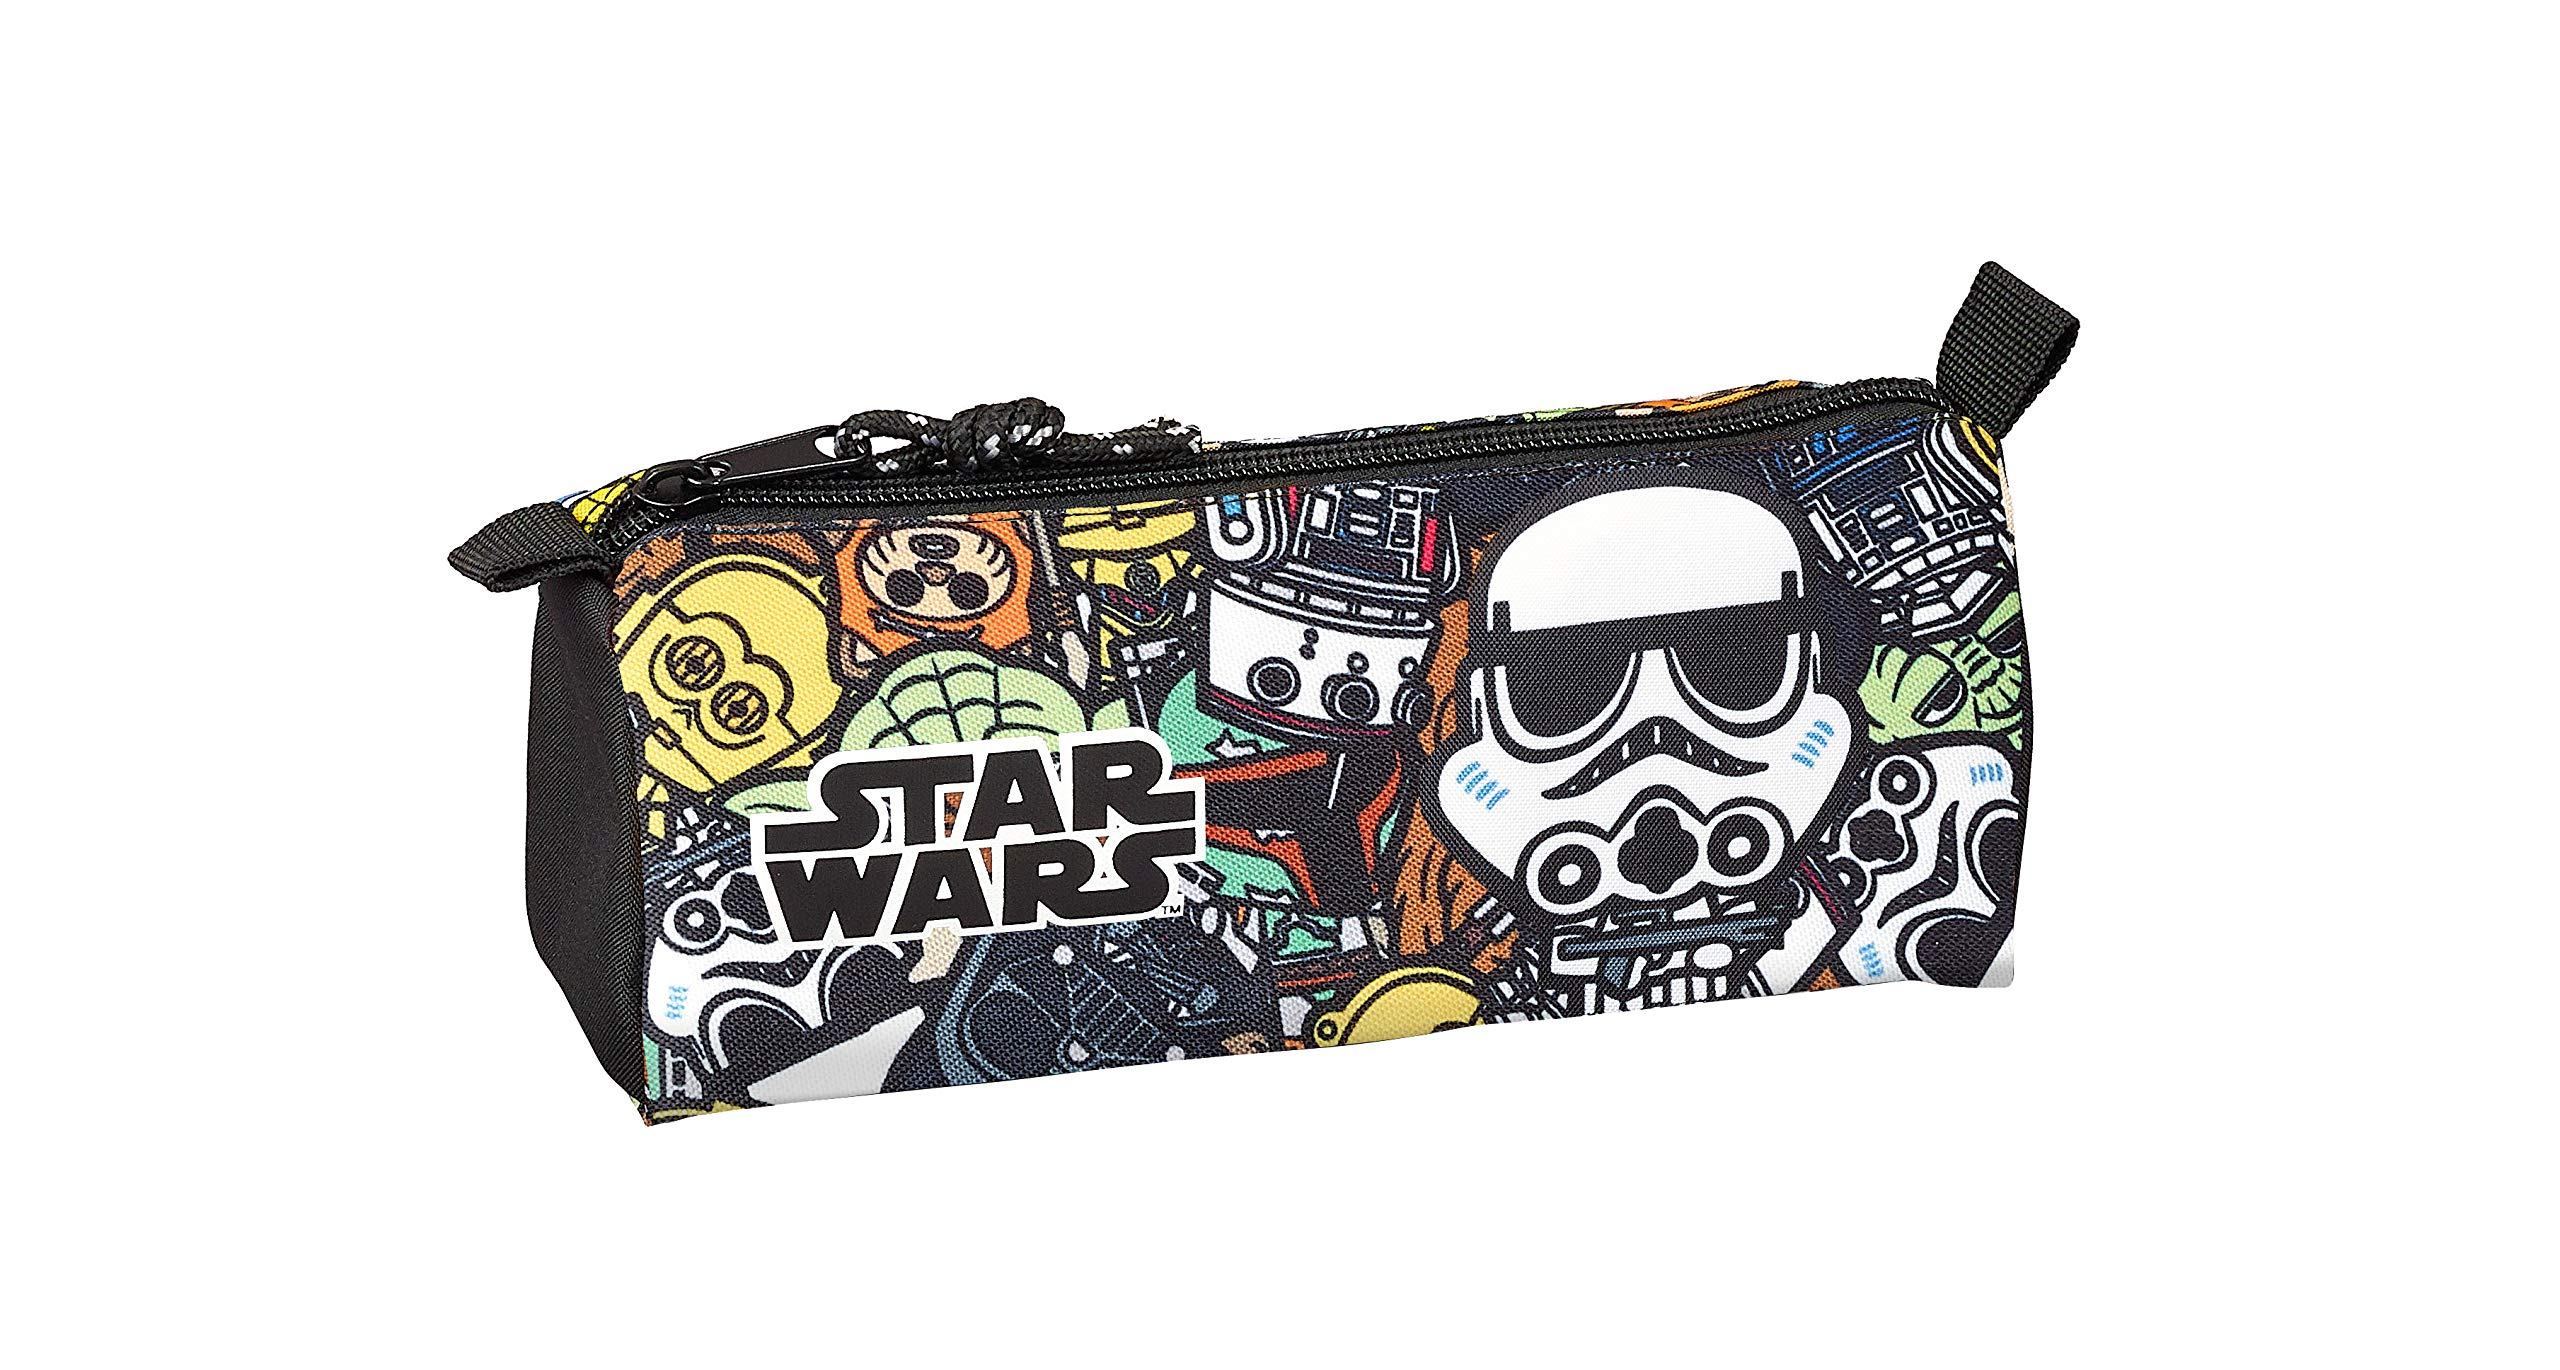 Star Wars Galaxy Oficial Estuche Escolar 210x70x80mm